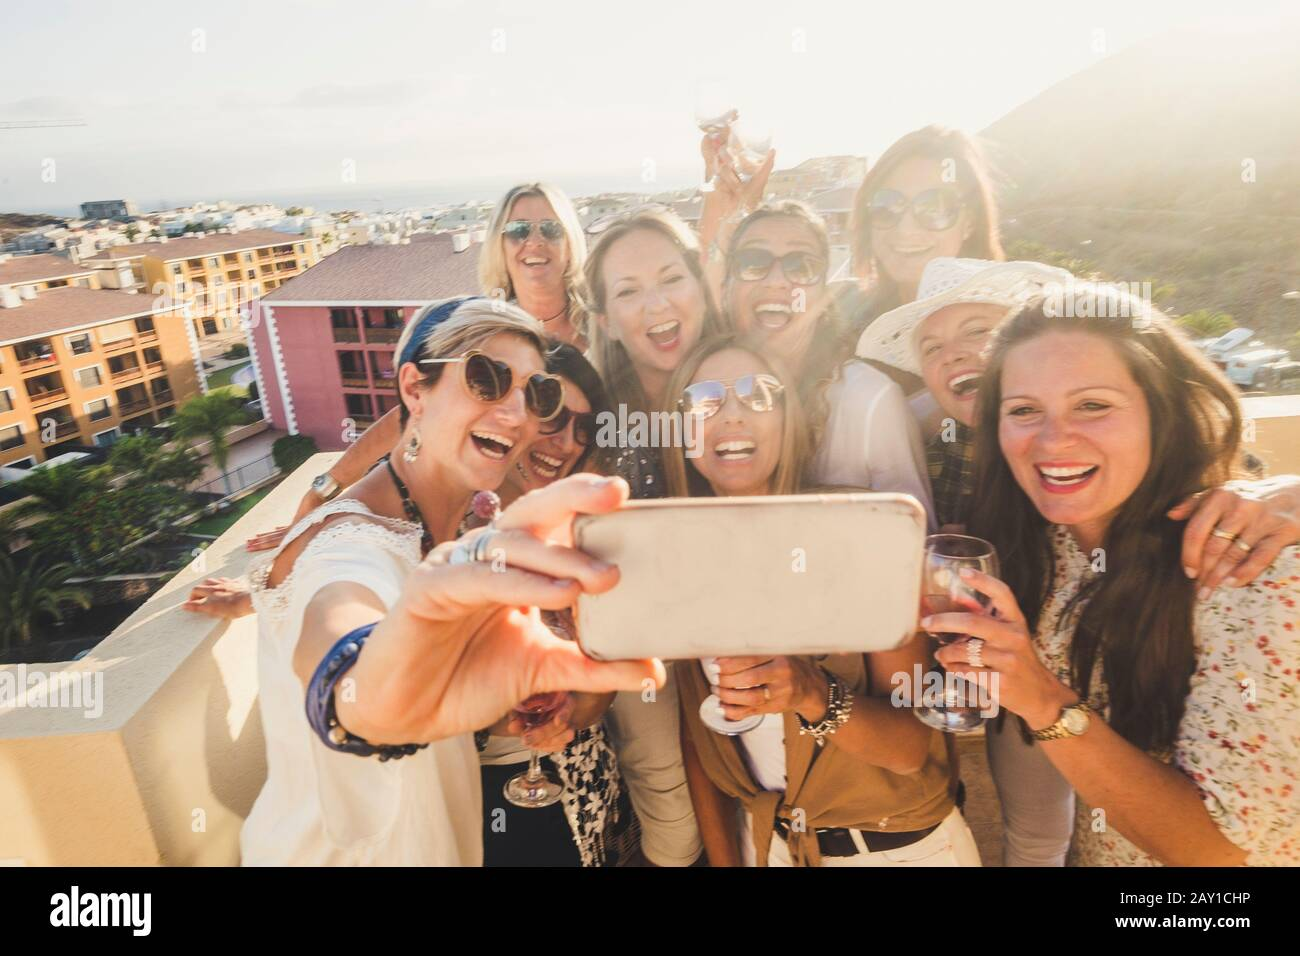 Group of happy and cheerful young women have fun in party together outdoor taking selfie picture with phone - people celebrate with wine and toasting Stock Photo